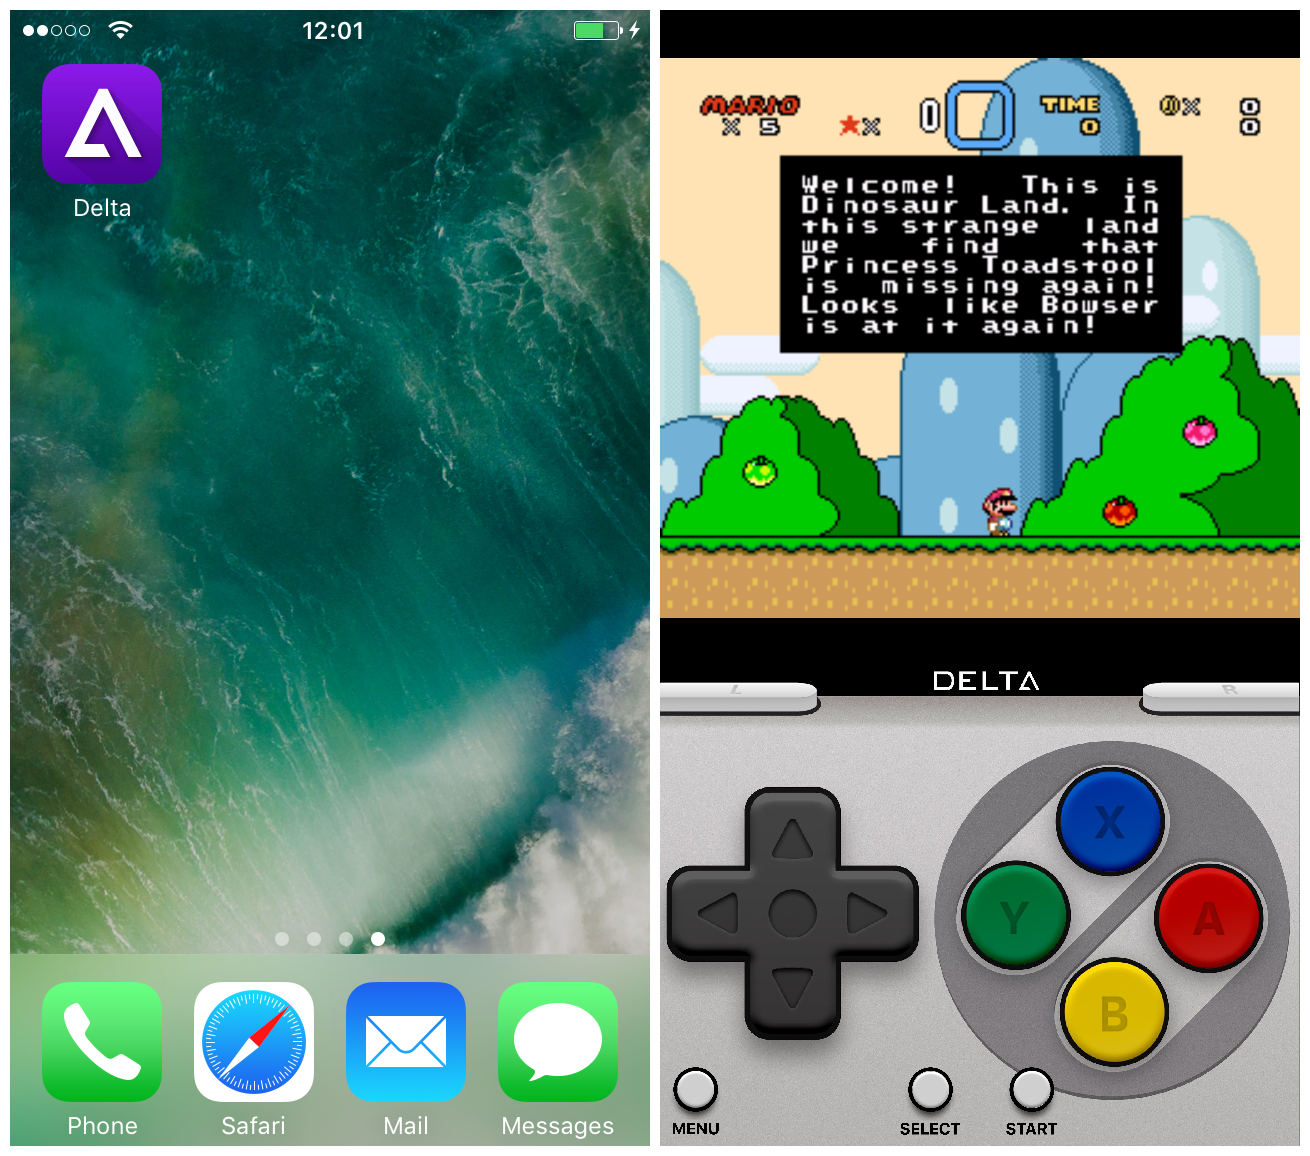 Delta emulator for iOS beta 2 released